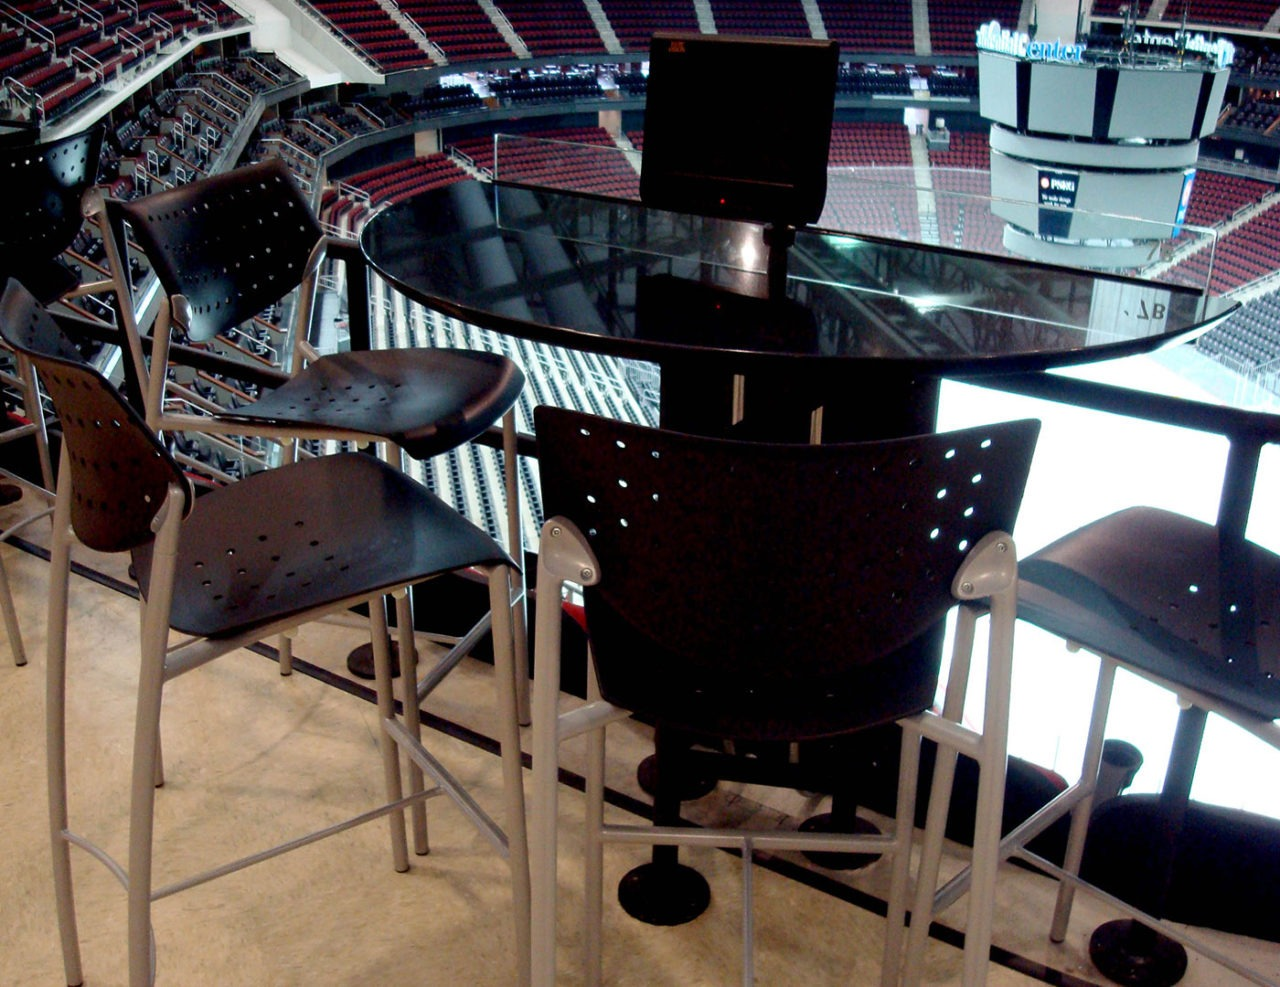 Custom designed electrical four seat tables for VIP seating